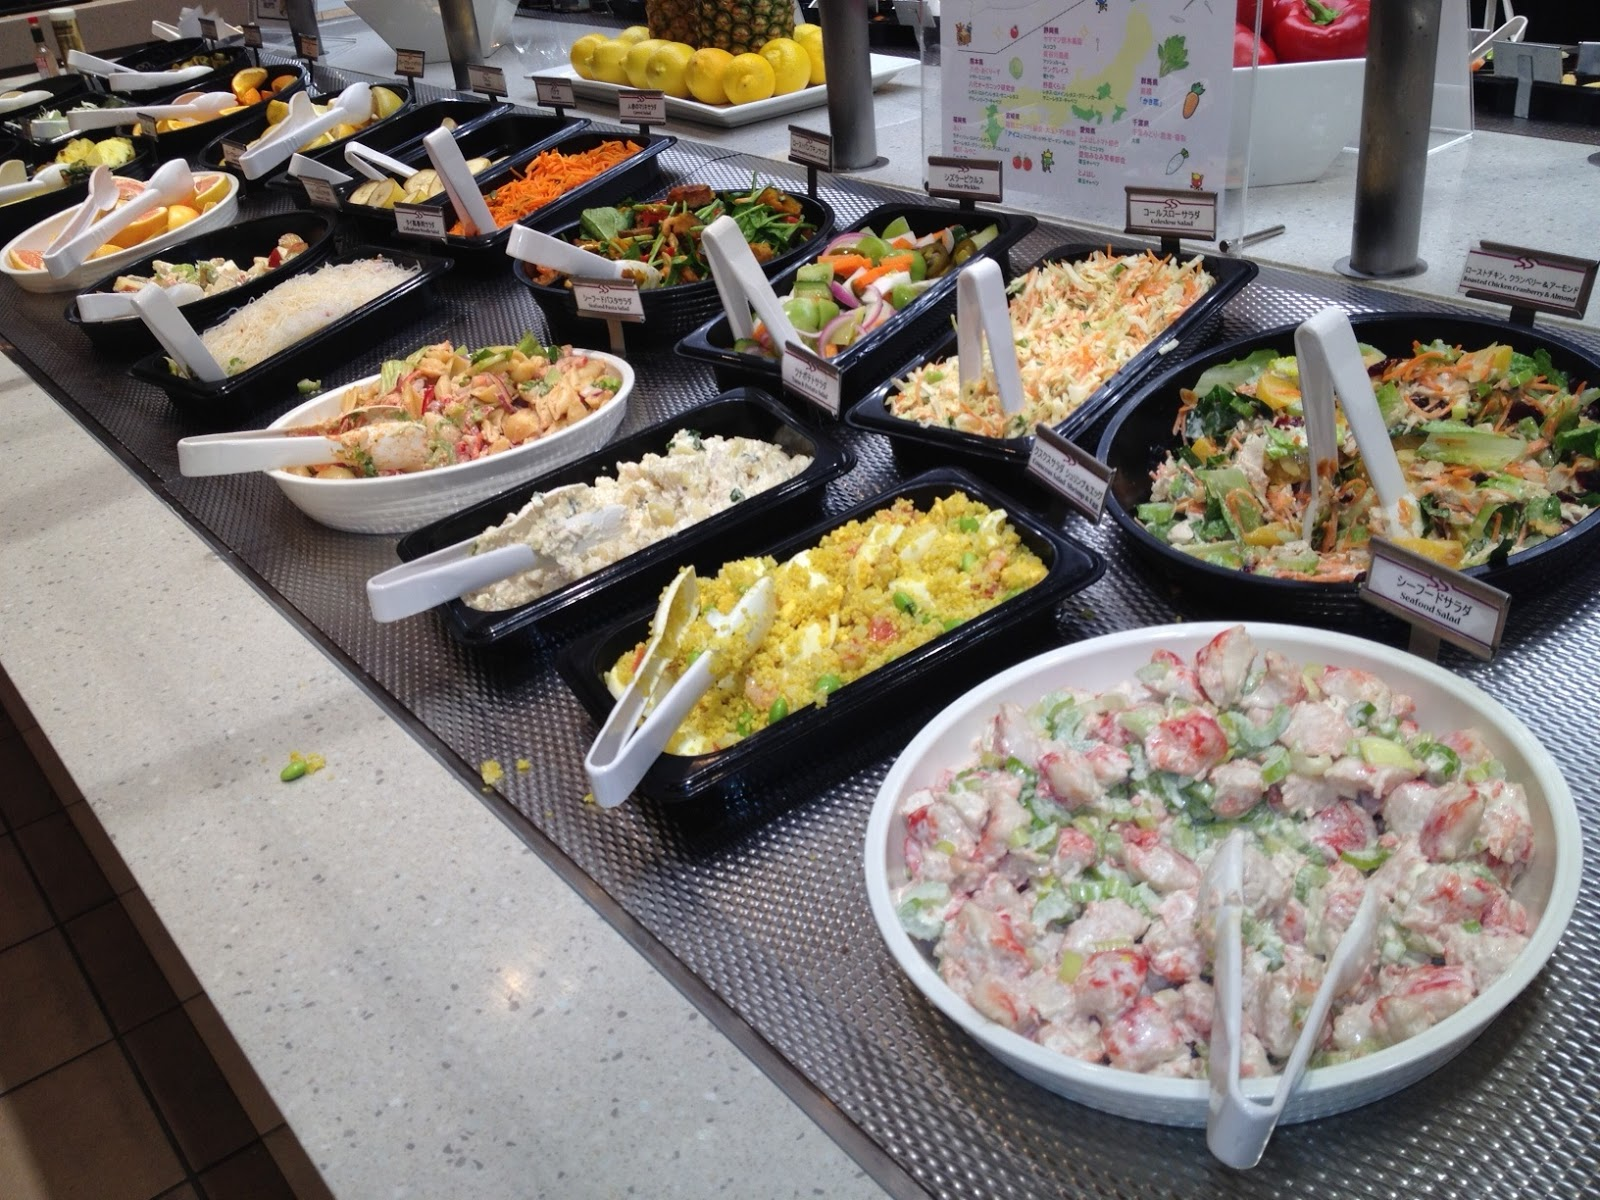 marketing plan salad bar Free marketing plan template and guide available for download write an effective marketing strategy to help your business to stand out.